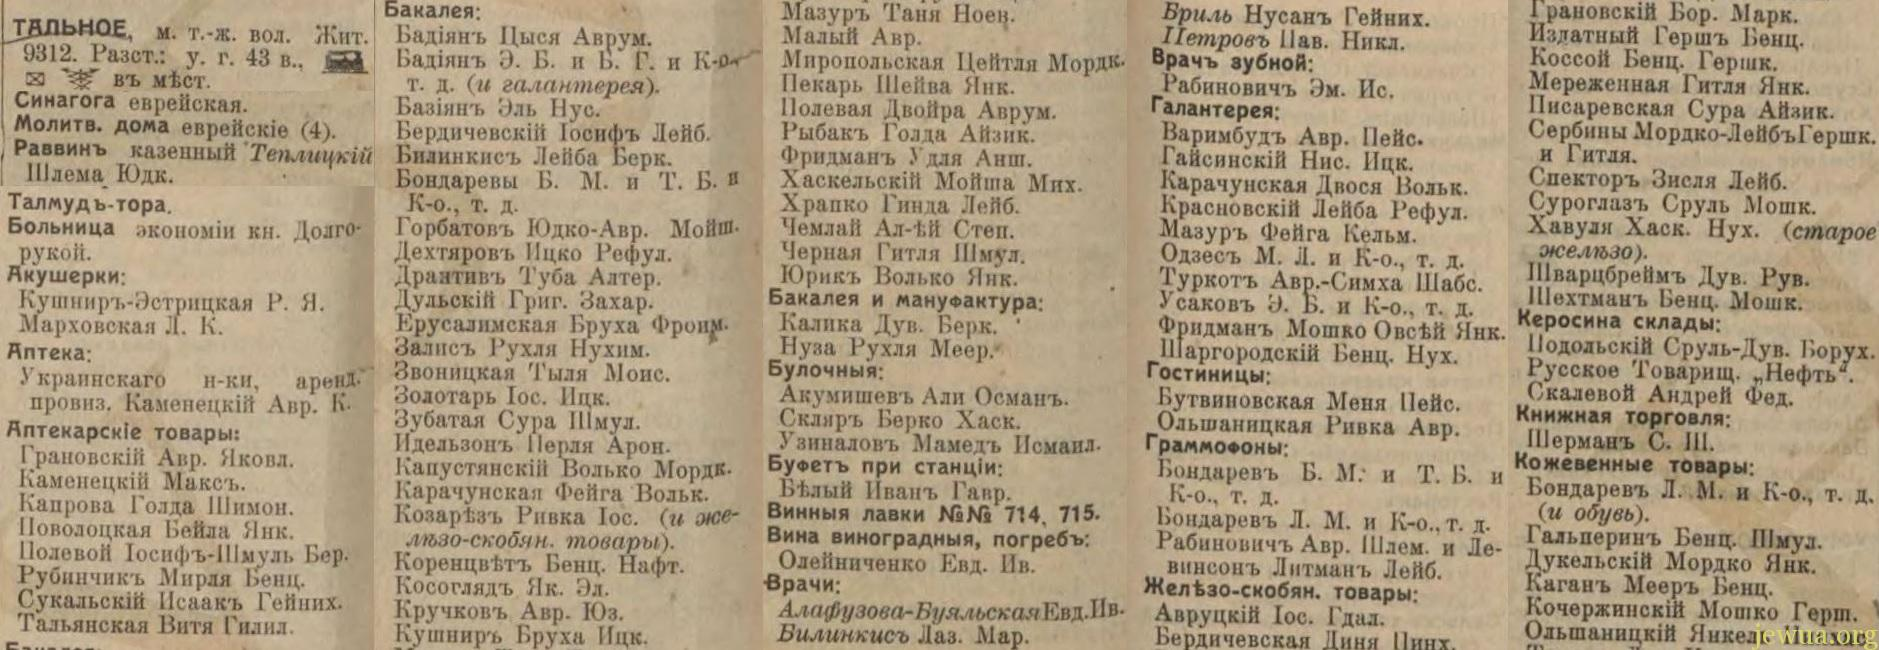 Talne entrepreneurs list from Russian Empire Business Directories by 1913